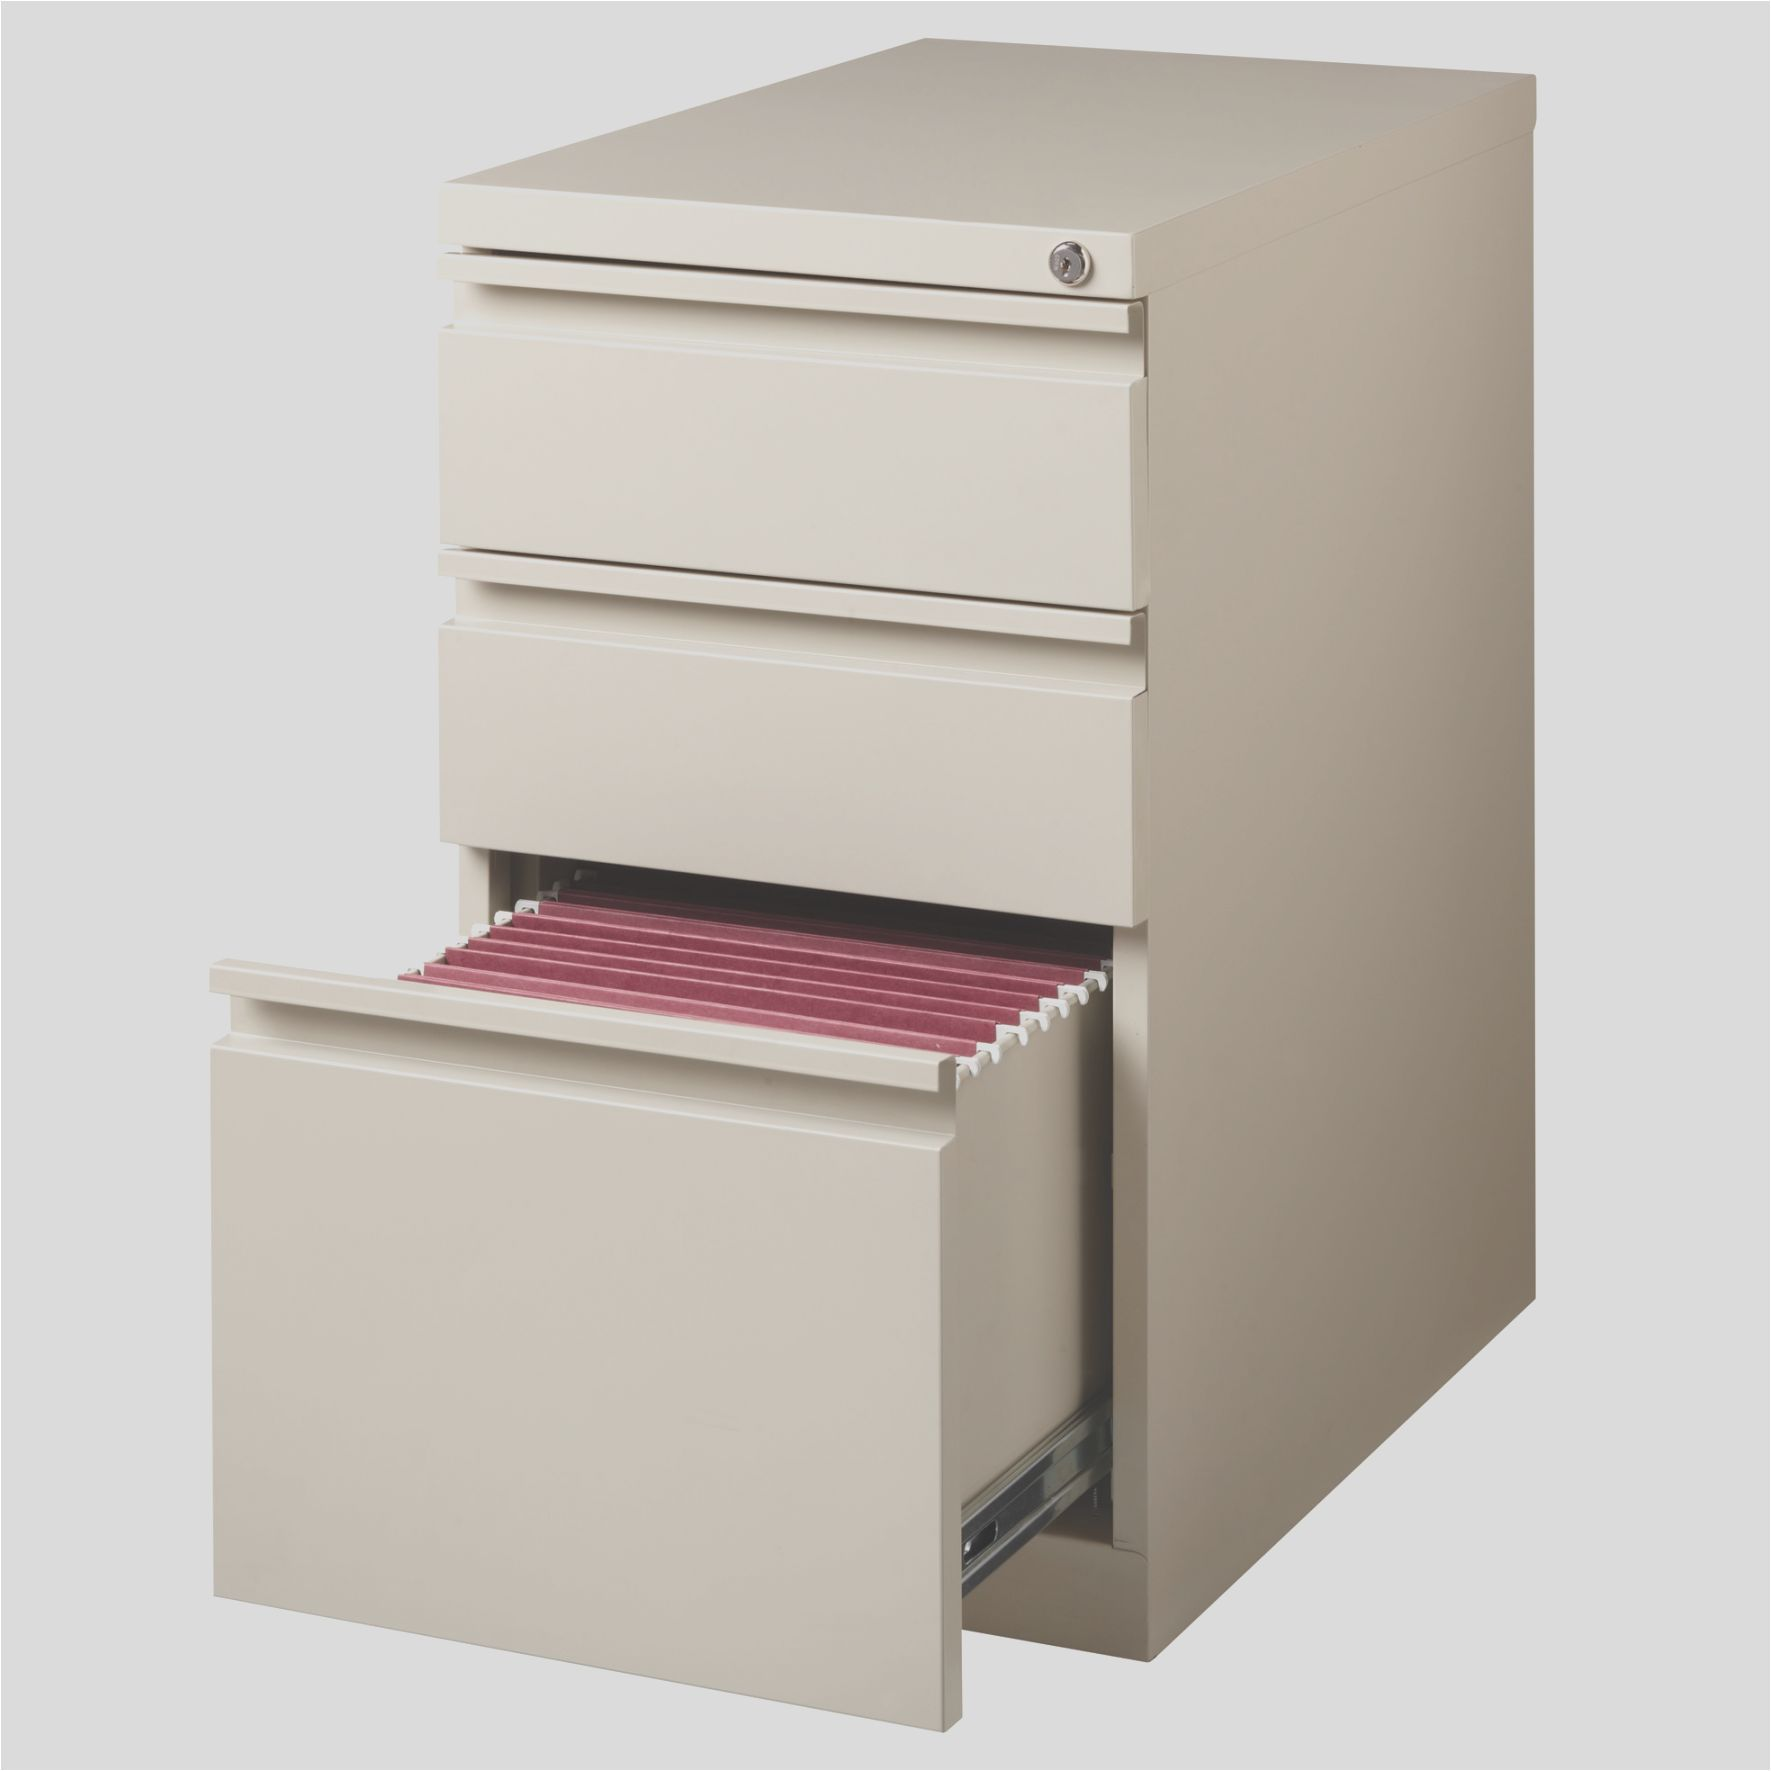 Marvelous 50 Latest File Cabinet Drawer Plan File Cabinet Drawer Download Free Architecture Designs Grimeyleaguecom